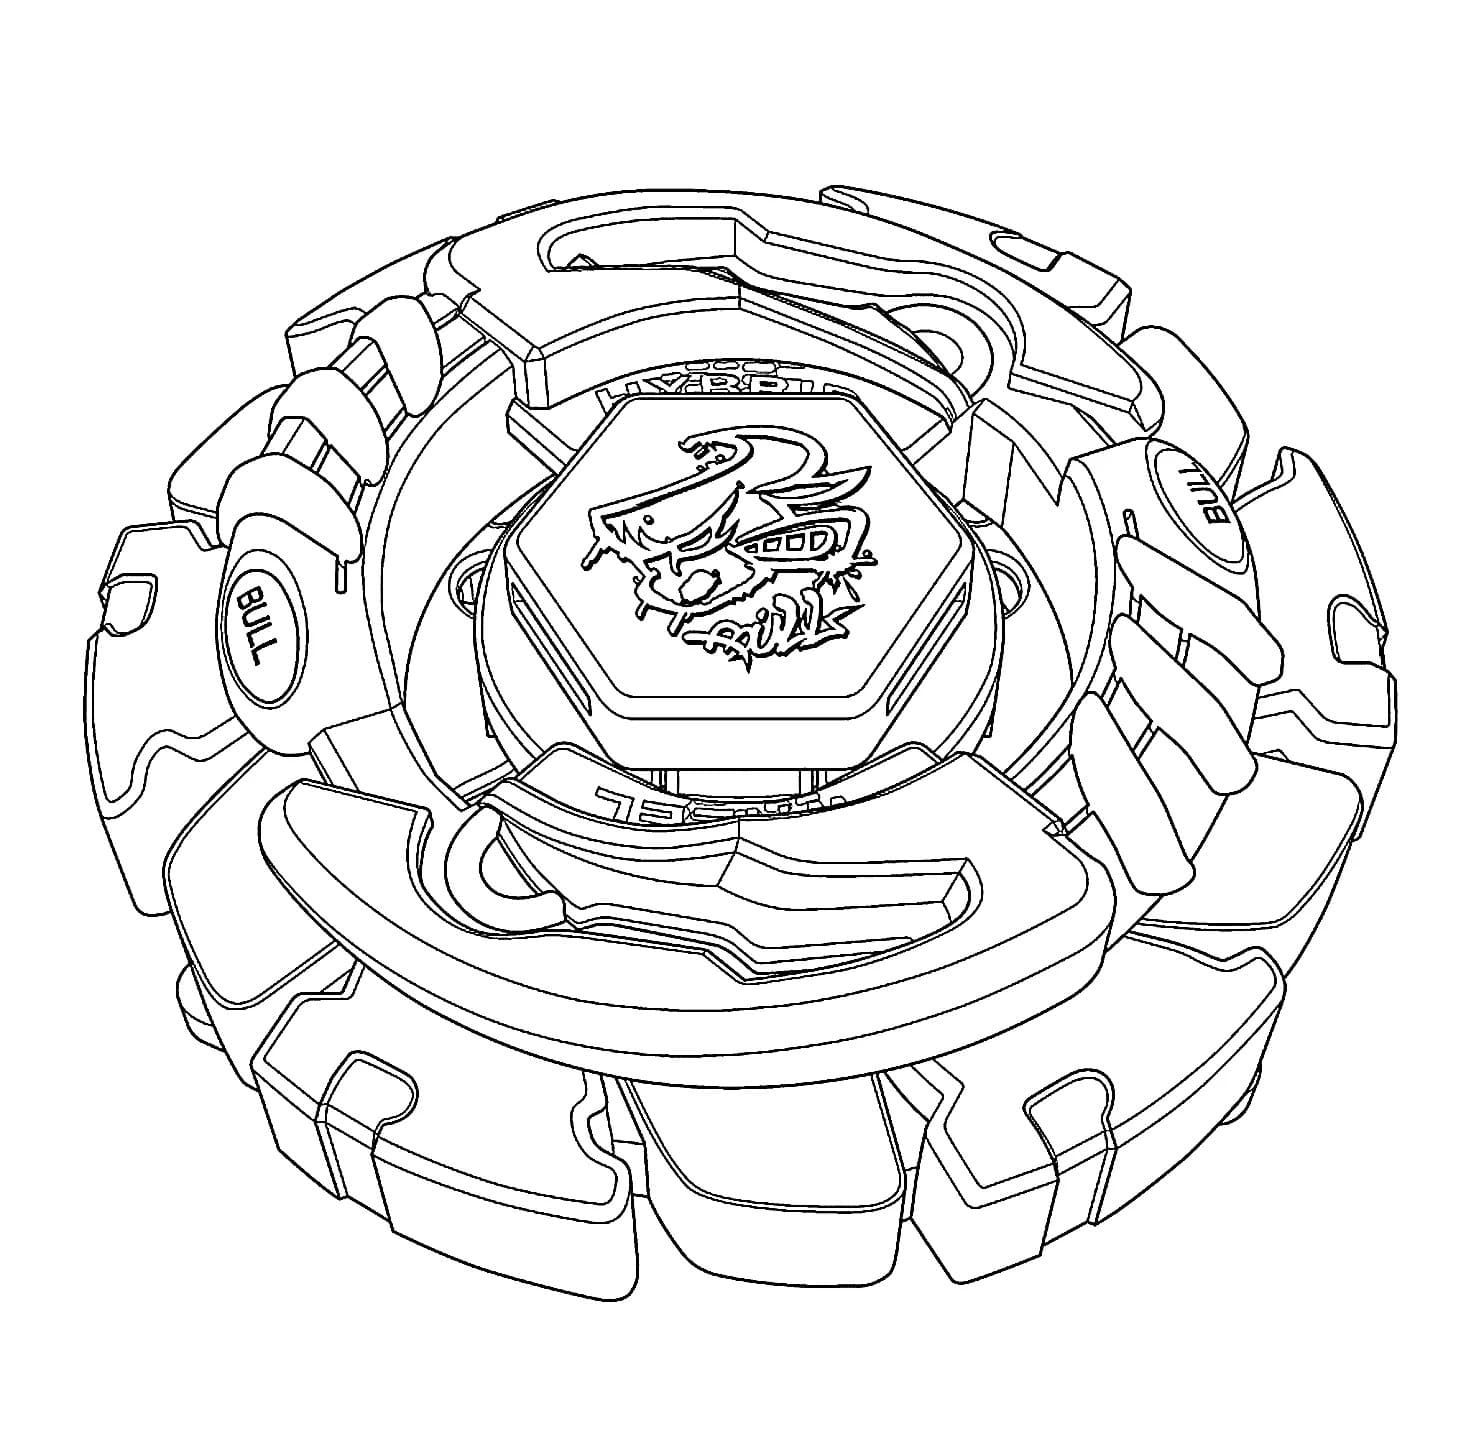 beyblade characters coloring pages beyblade coloring pages at getdrawings free download coloring pages beyblade characters